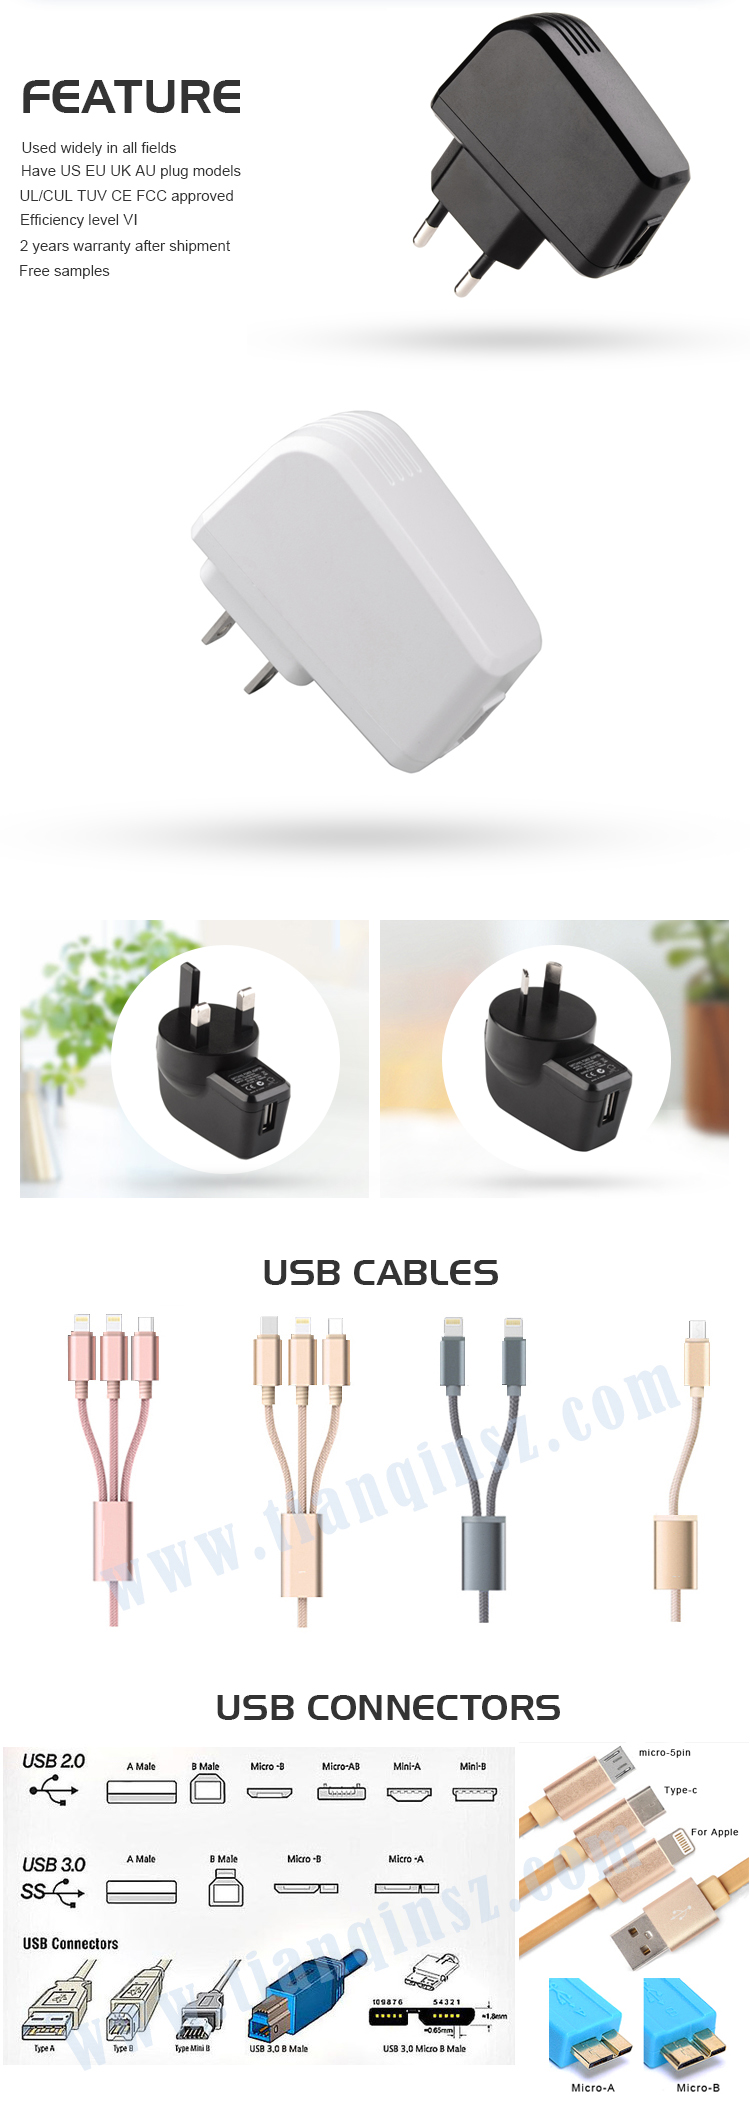 Level VI type-c/type c usb charger with ULCUL GS TUV CE FCC ROHS CB SAA,2 years warranty